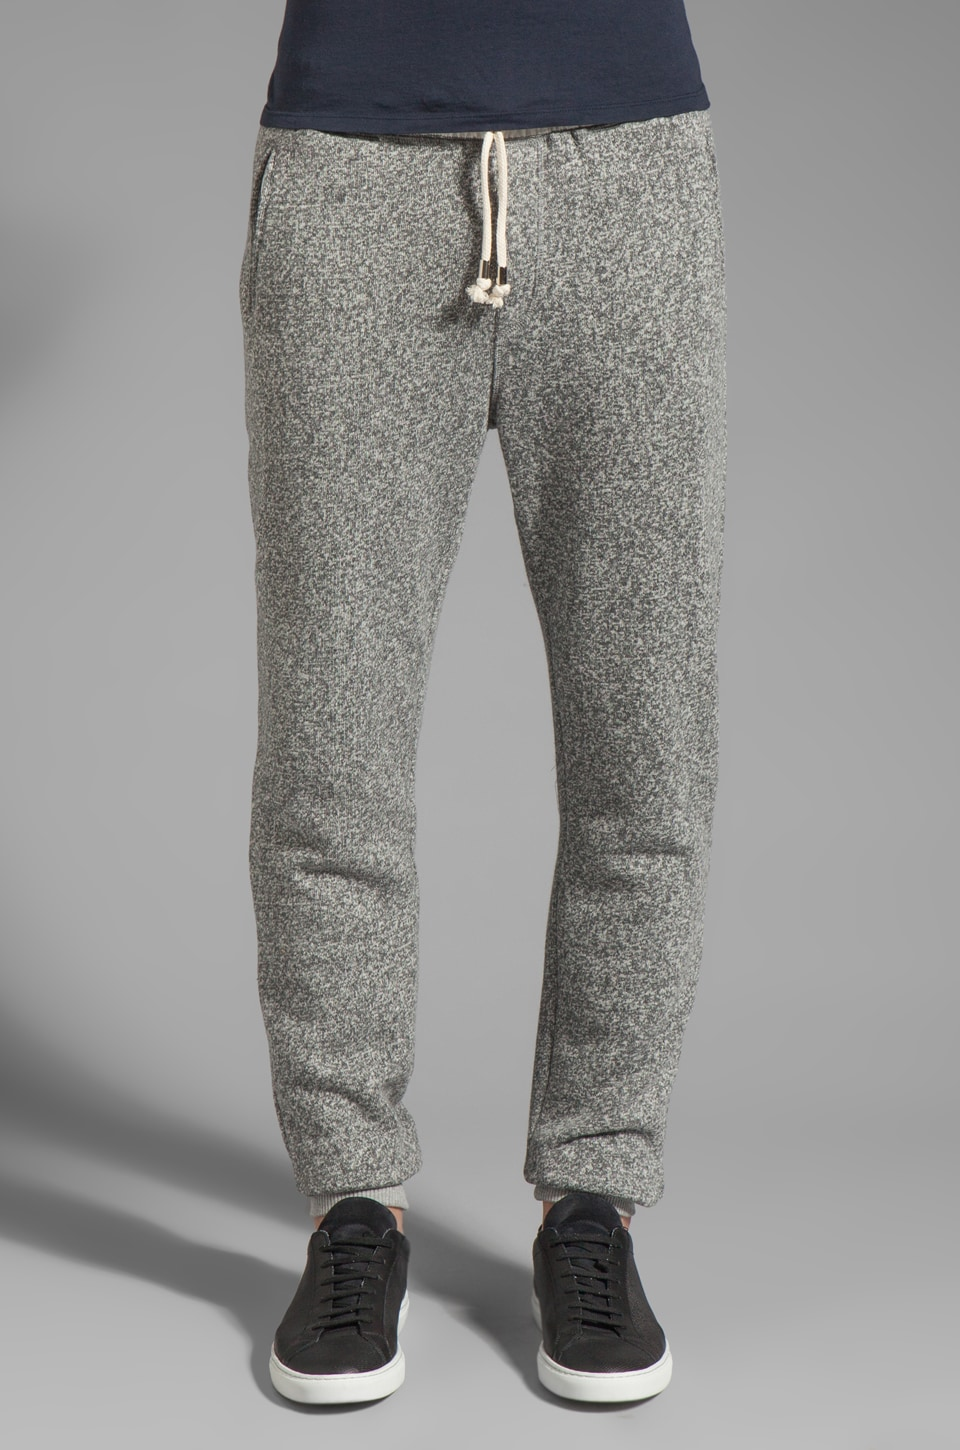 Shades of Grey by Micah Cohen Lounge Pant in Grey Marled Fleece